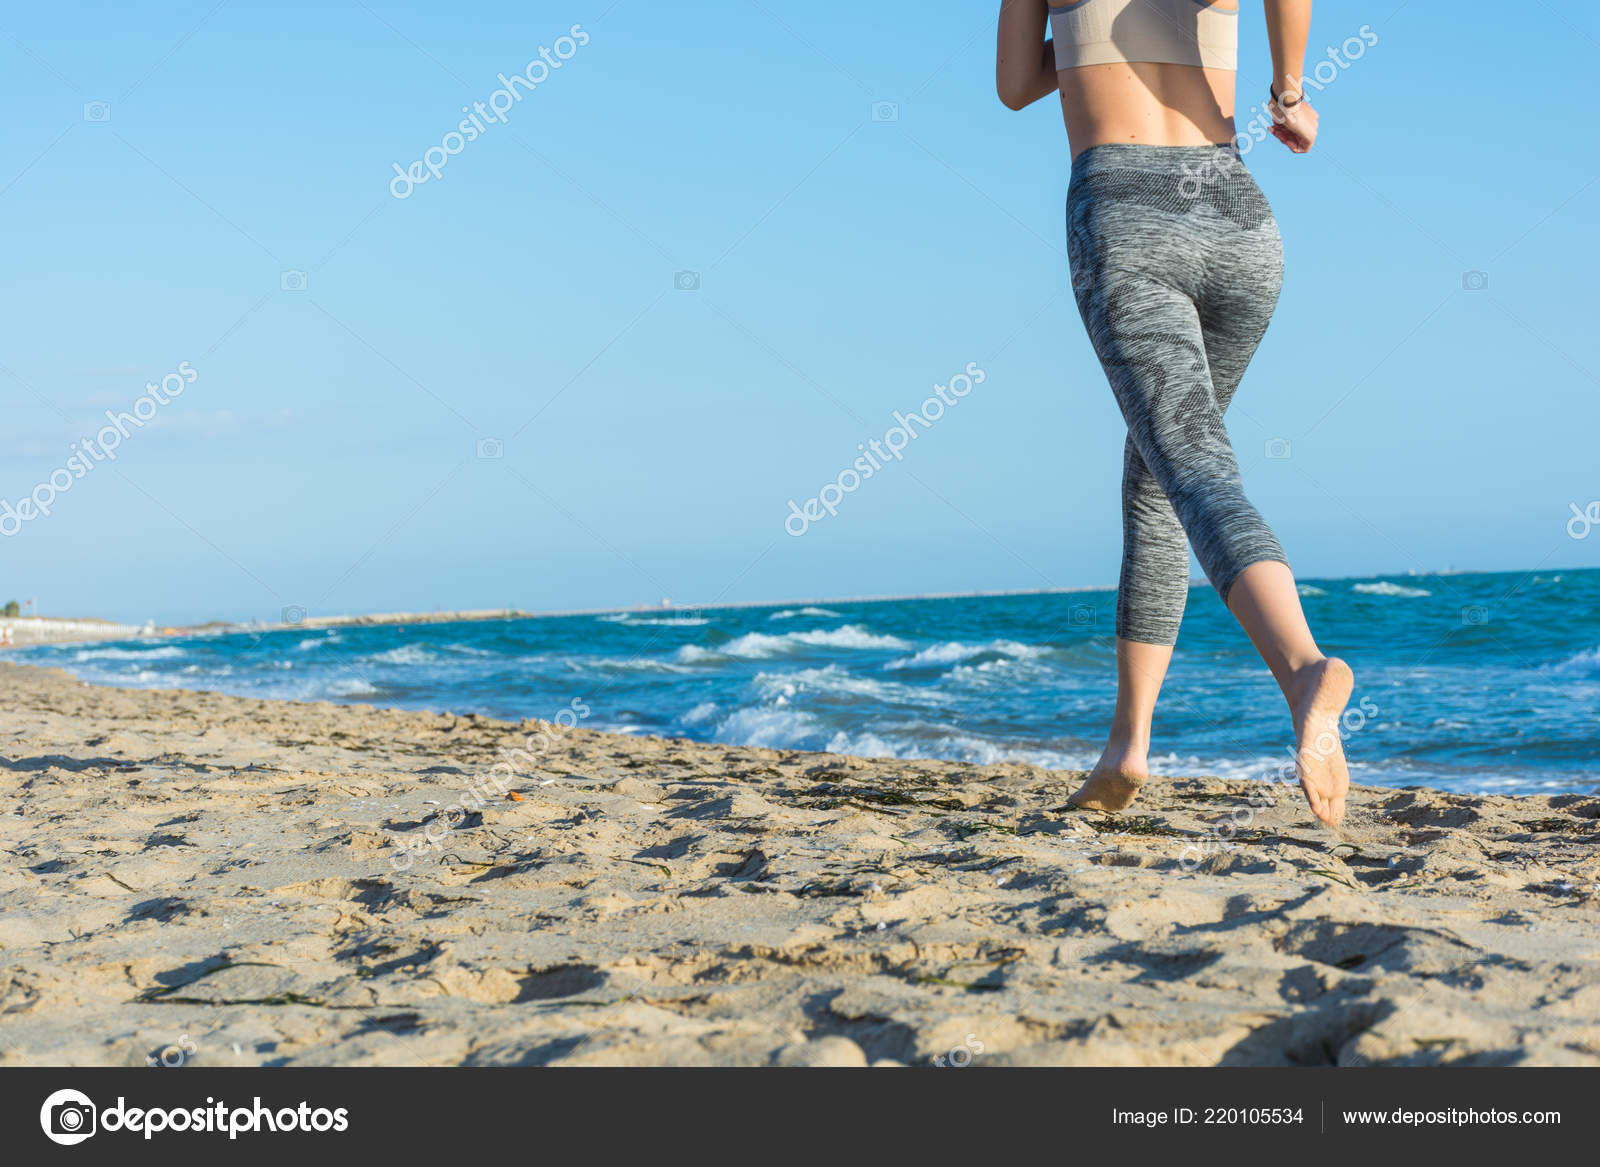 Girl runs on beach at sunset. Barefoot. It keeps fit and tanning on vacation.